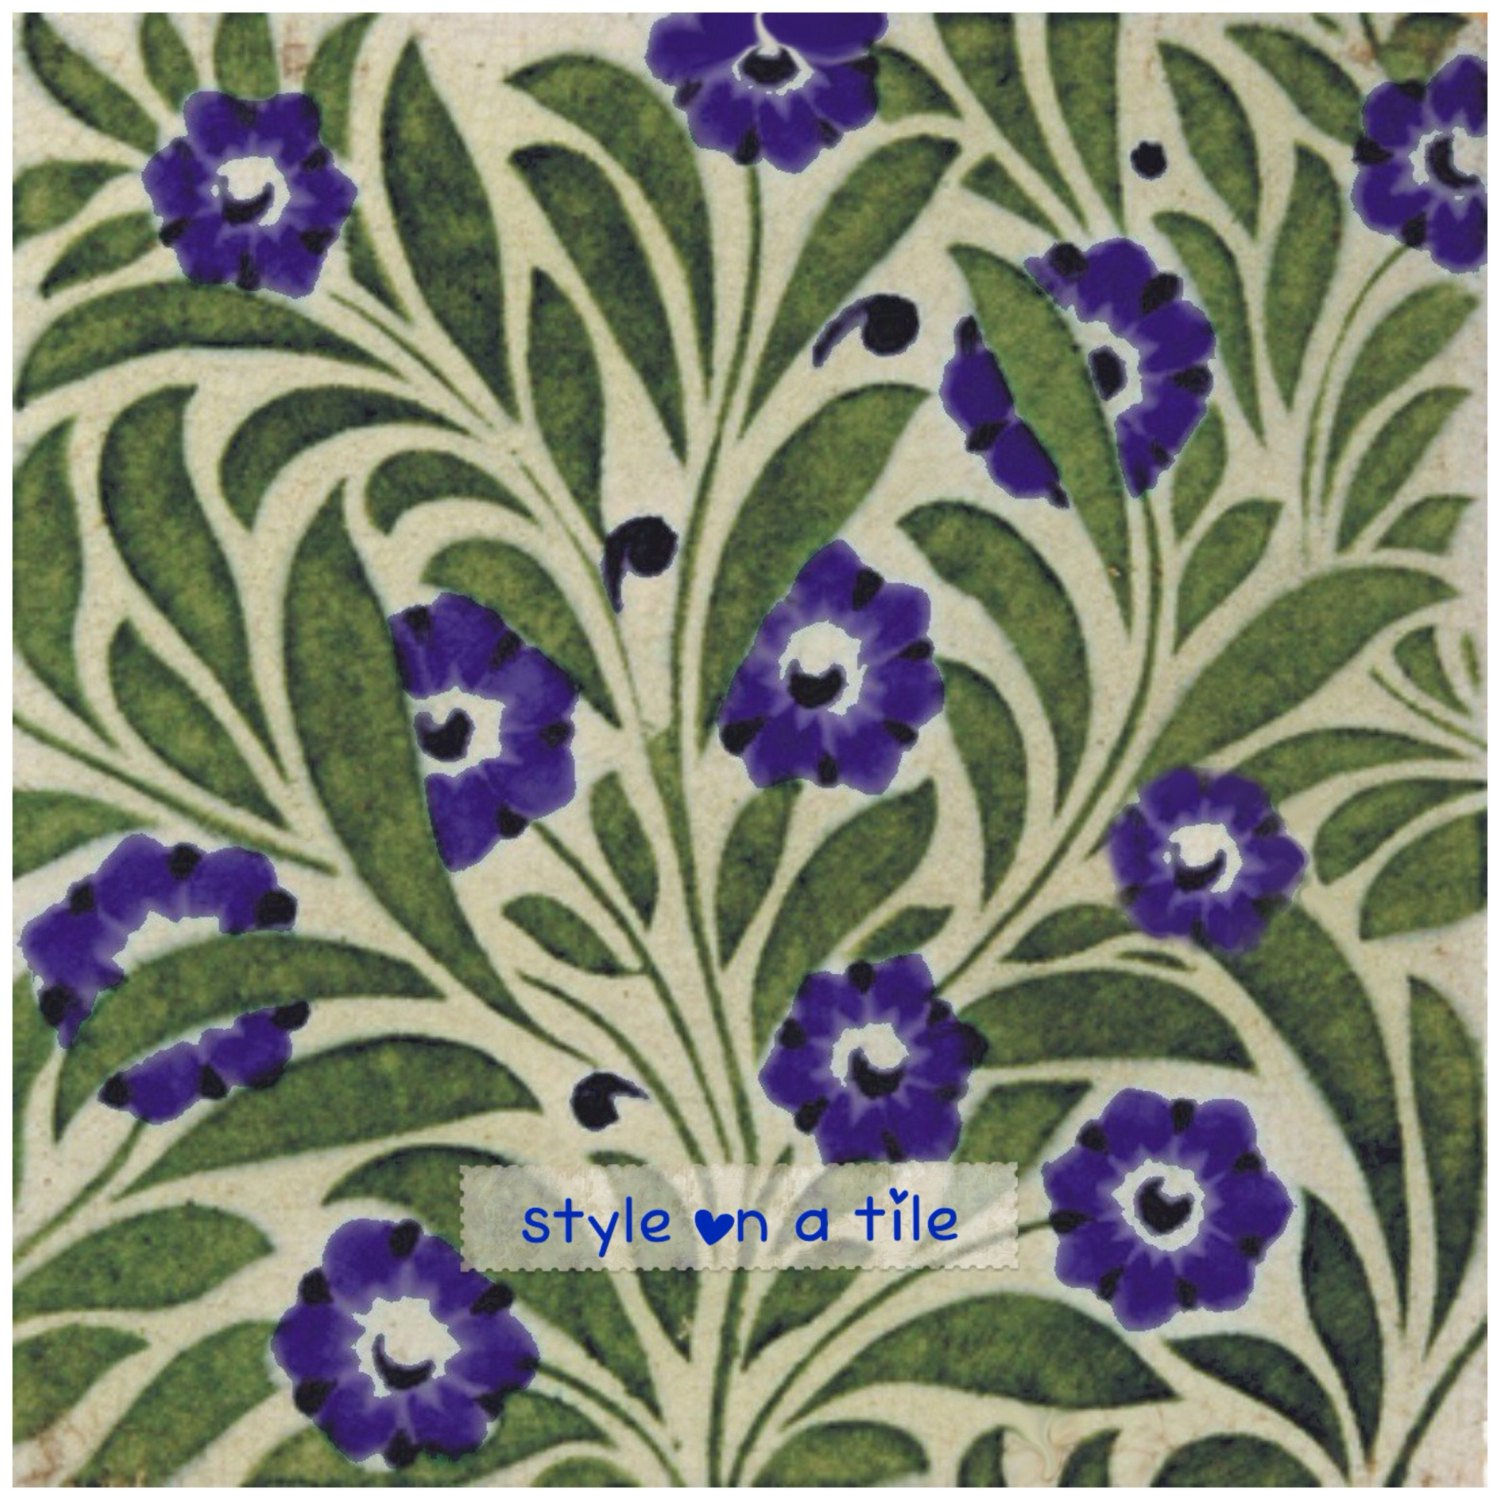 murals plant stand bathrooms fireplace surrounds Beautiful Art and Crafts William De Morgan Blue Small Flower and Green Leaf Foliage design 6//152mm ceramic tile for kitchens splash backs